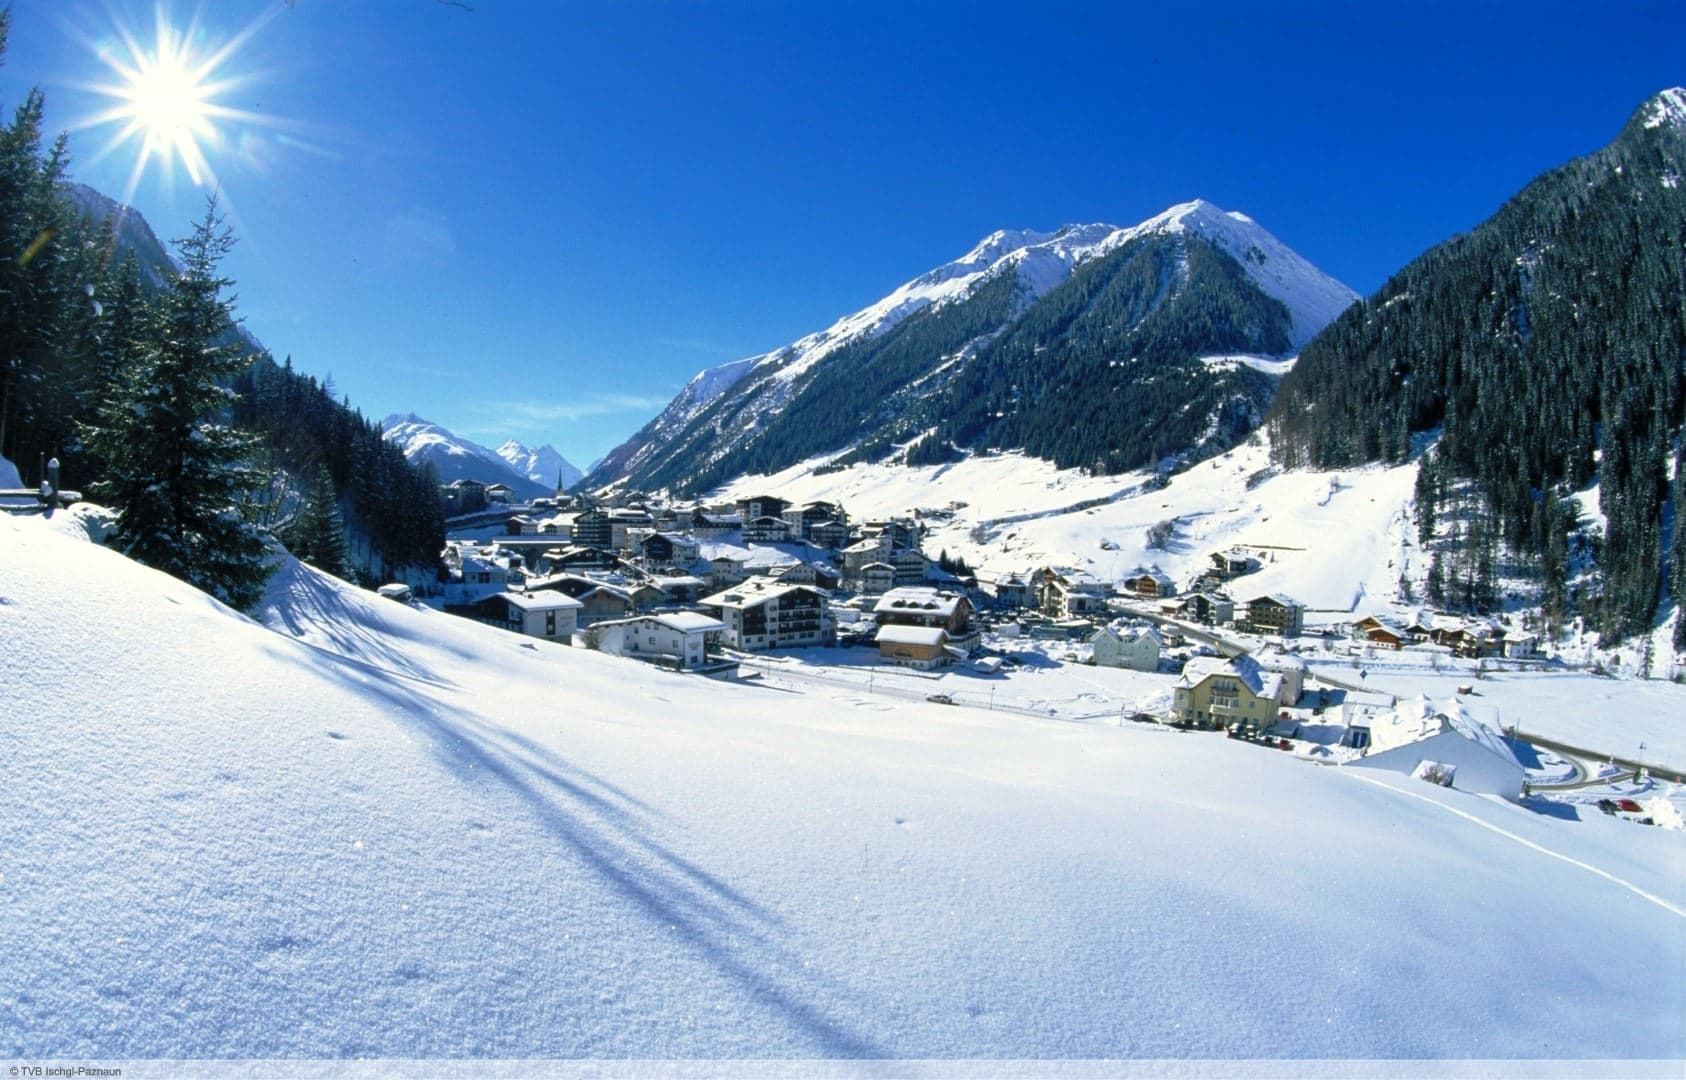 wintersport en aanbiedingen in Ischgl